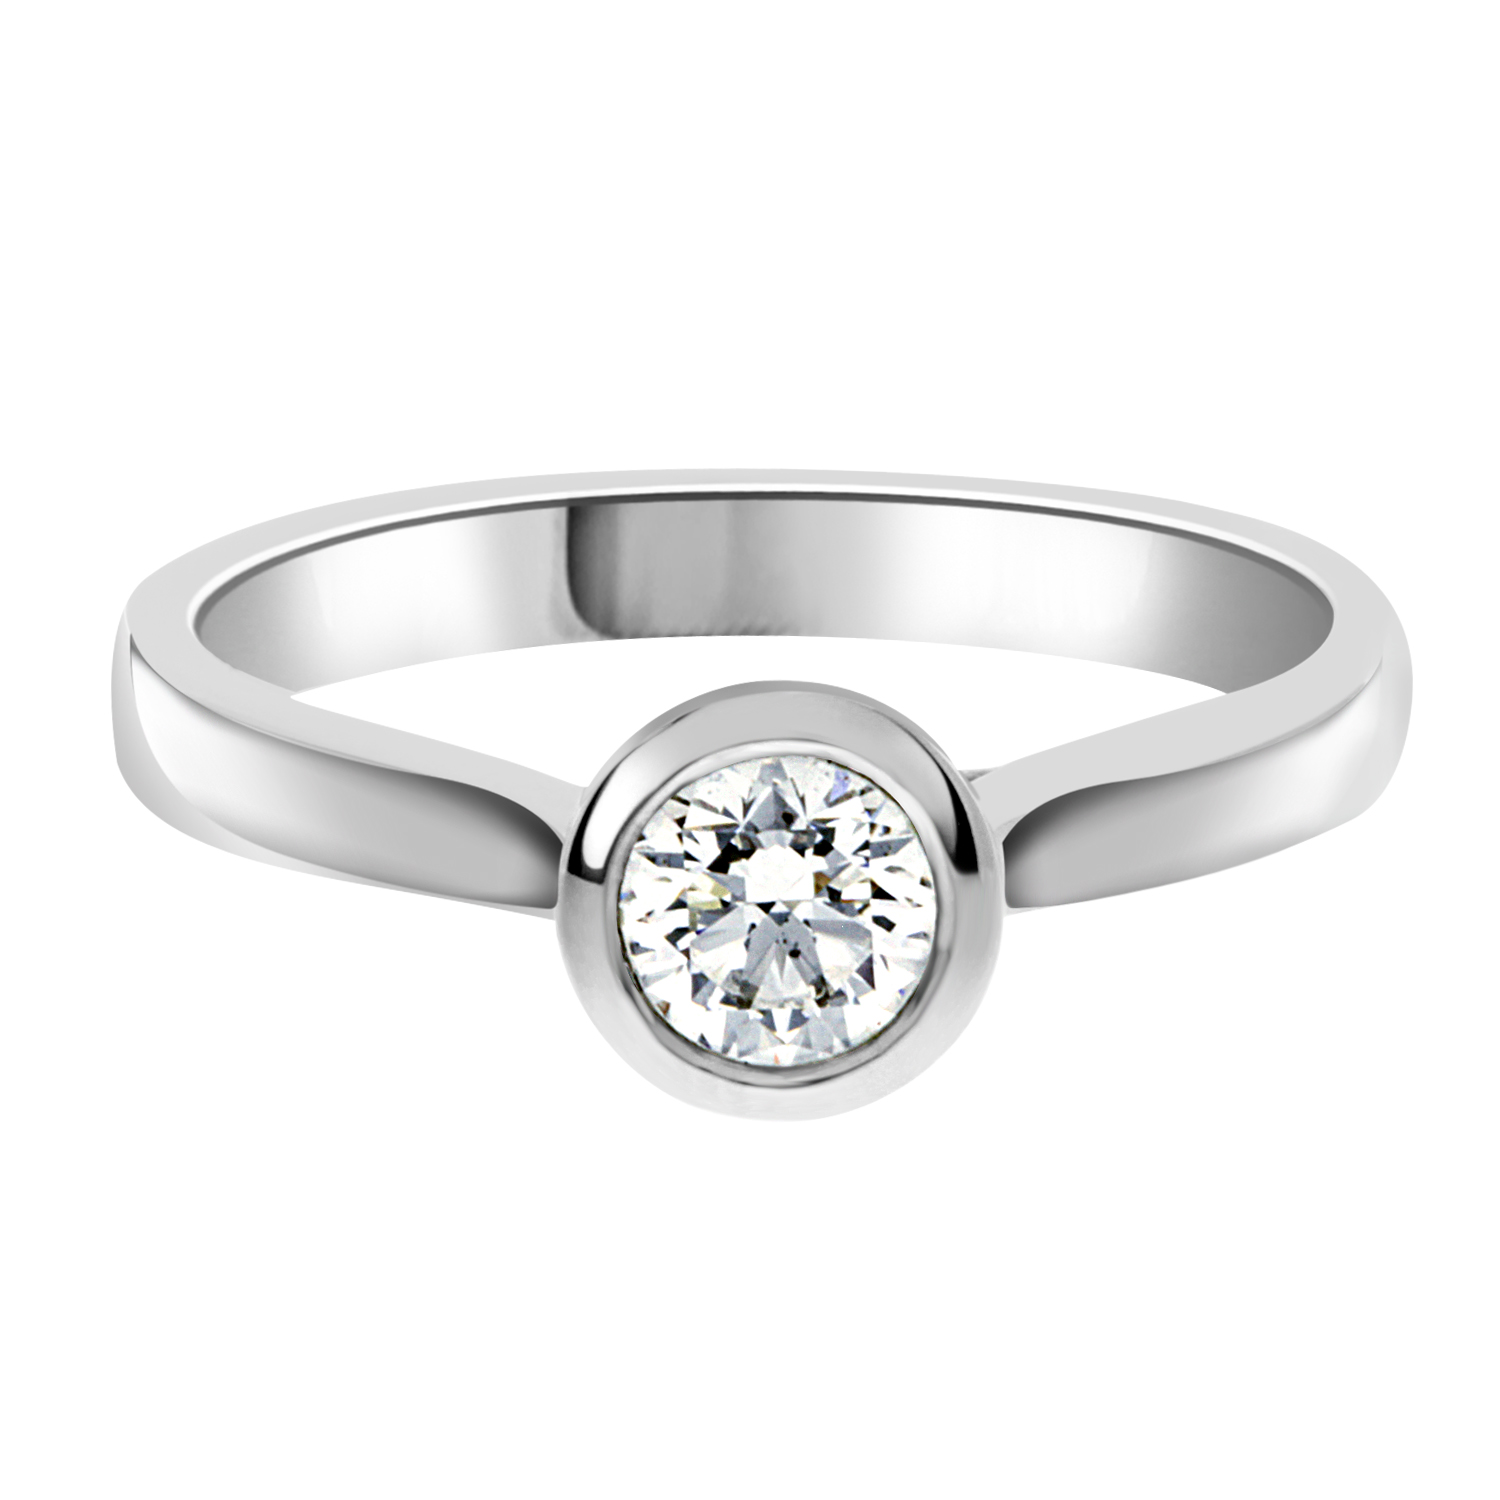 ring settings pin full engagement tacori jewellery bloom setting solitaire